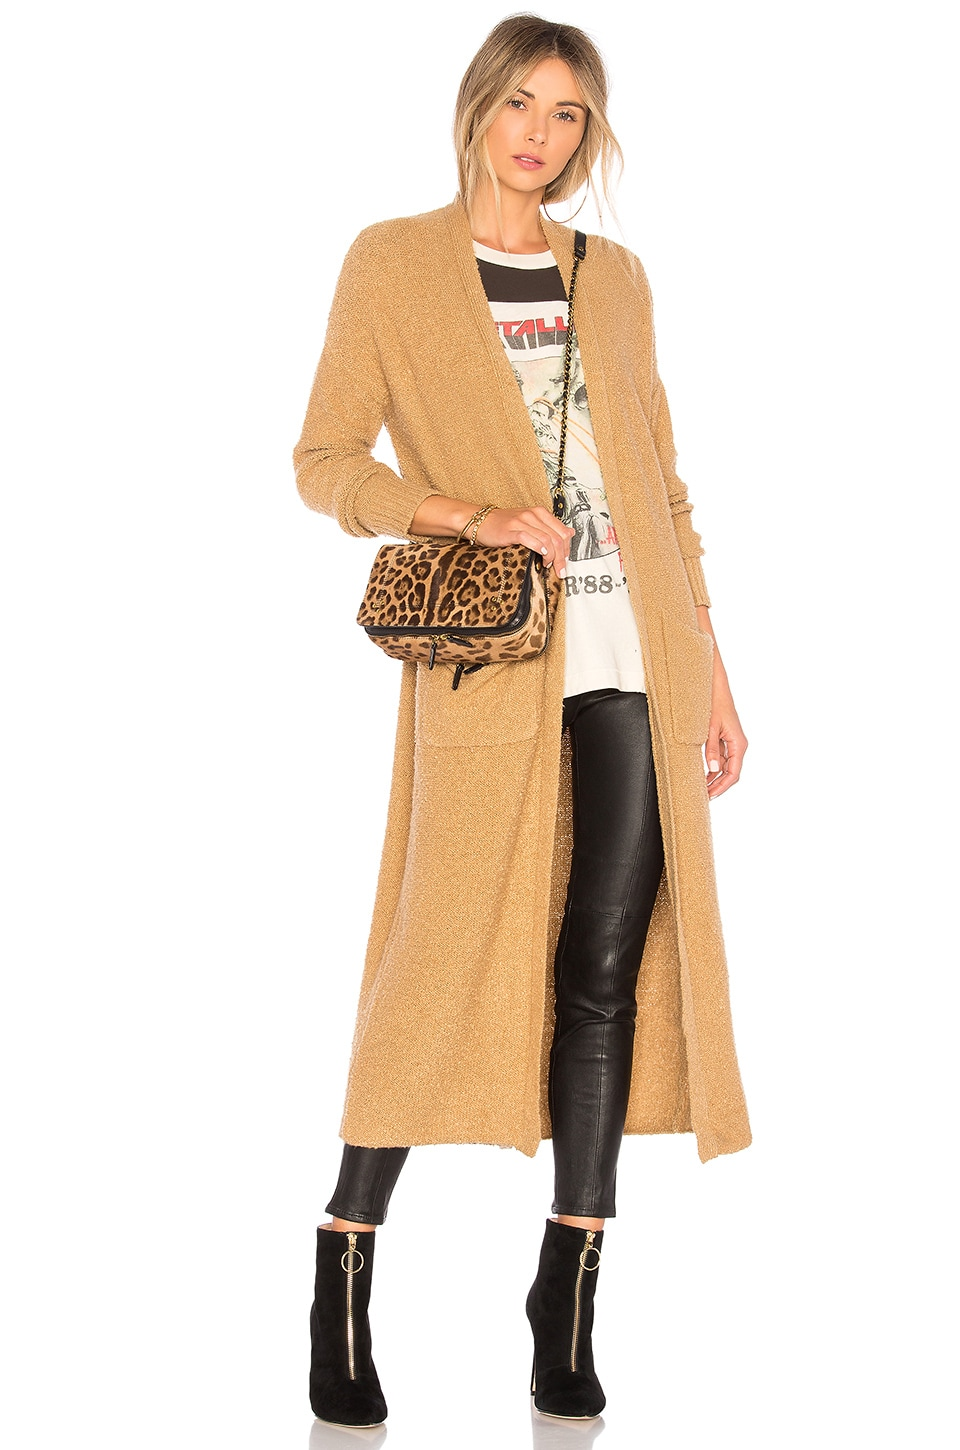 House of Harlow 1960 x REVOLVE Nico Duster in Camel